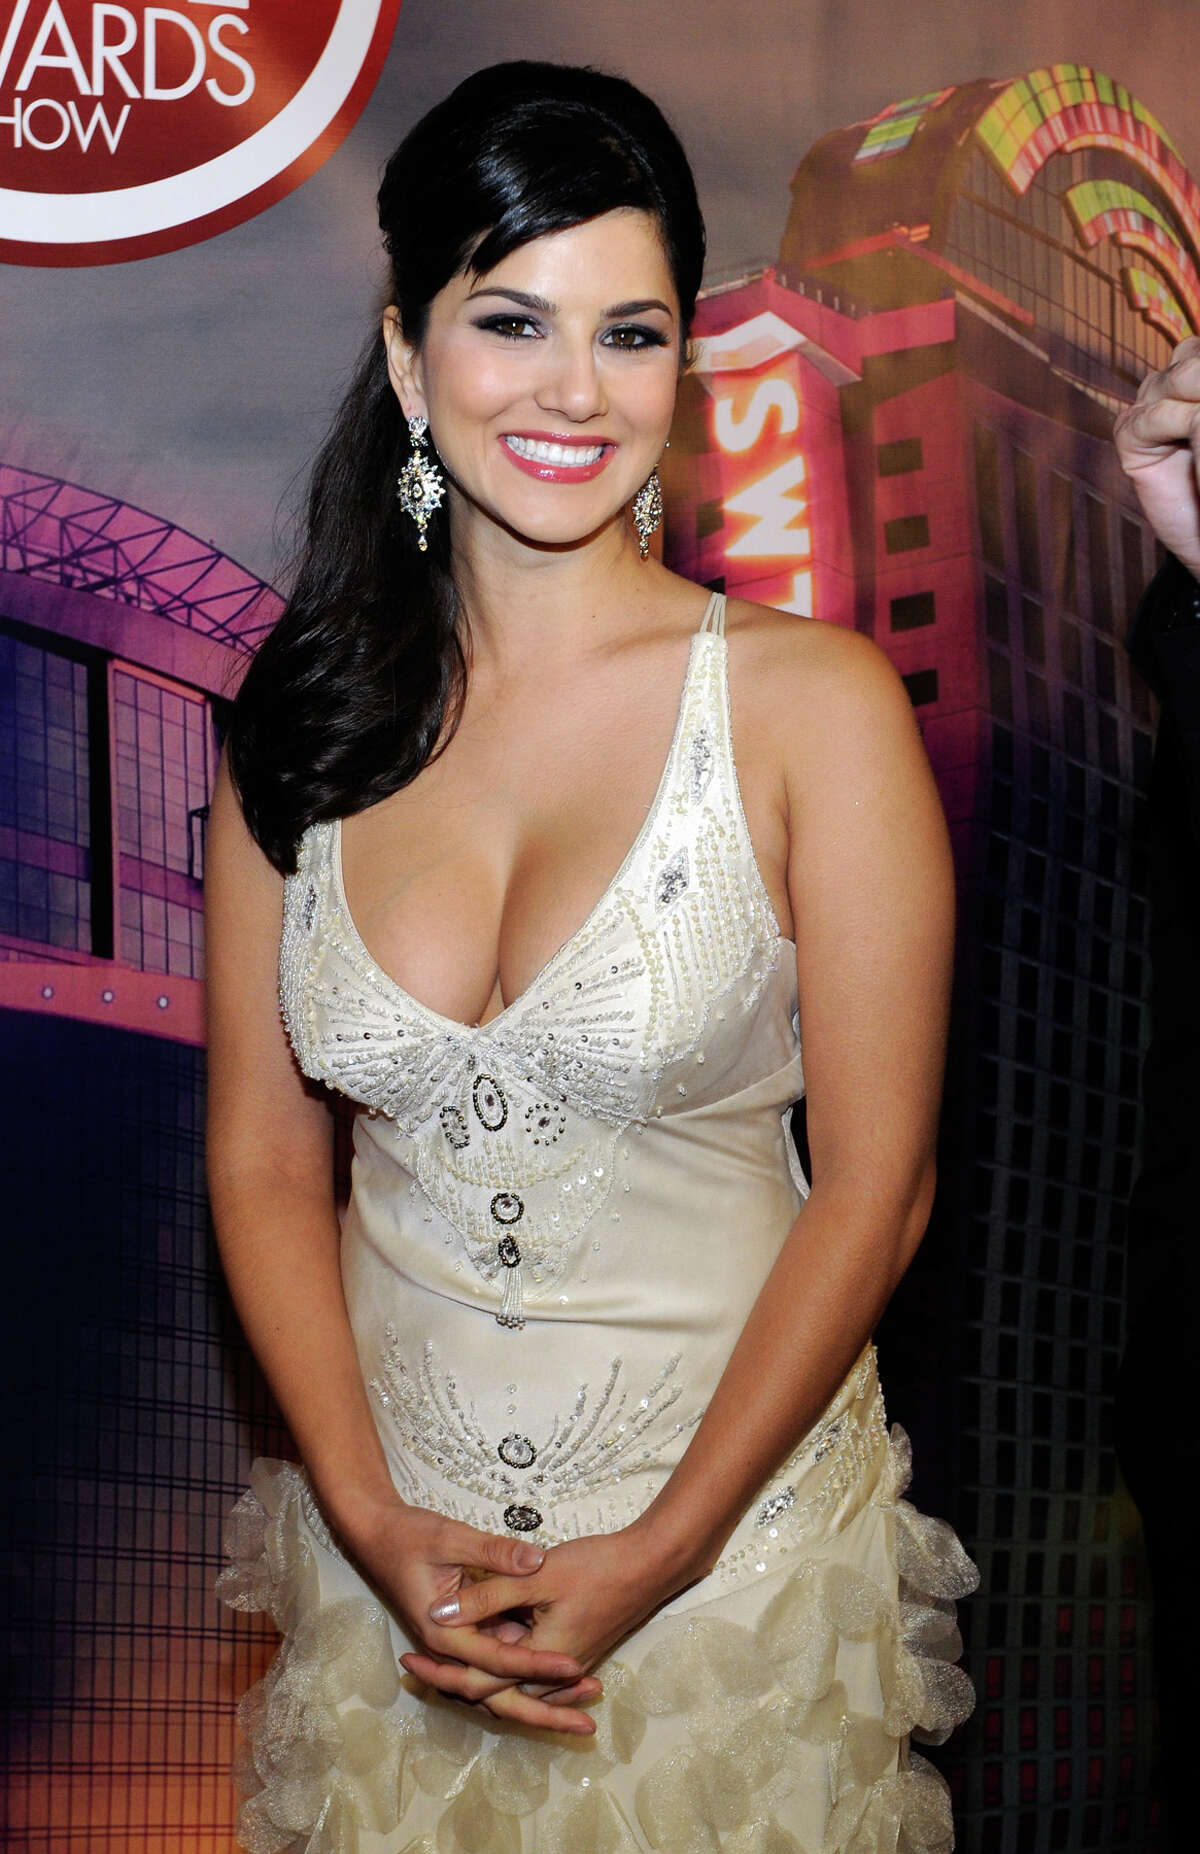 Porn star Sunny Leone changing Bollywoods views on sex